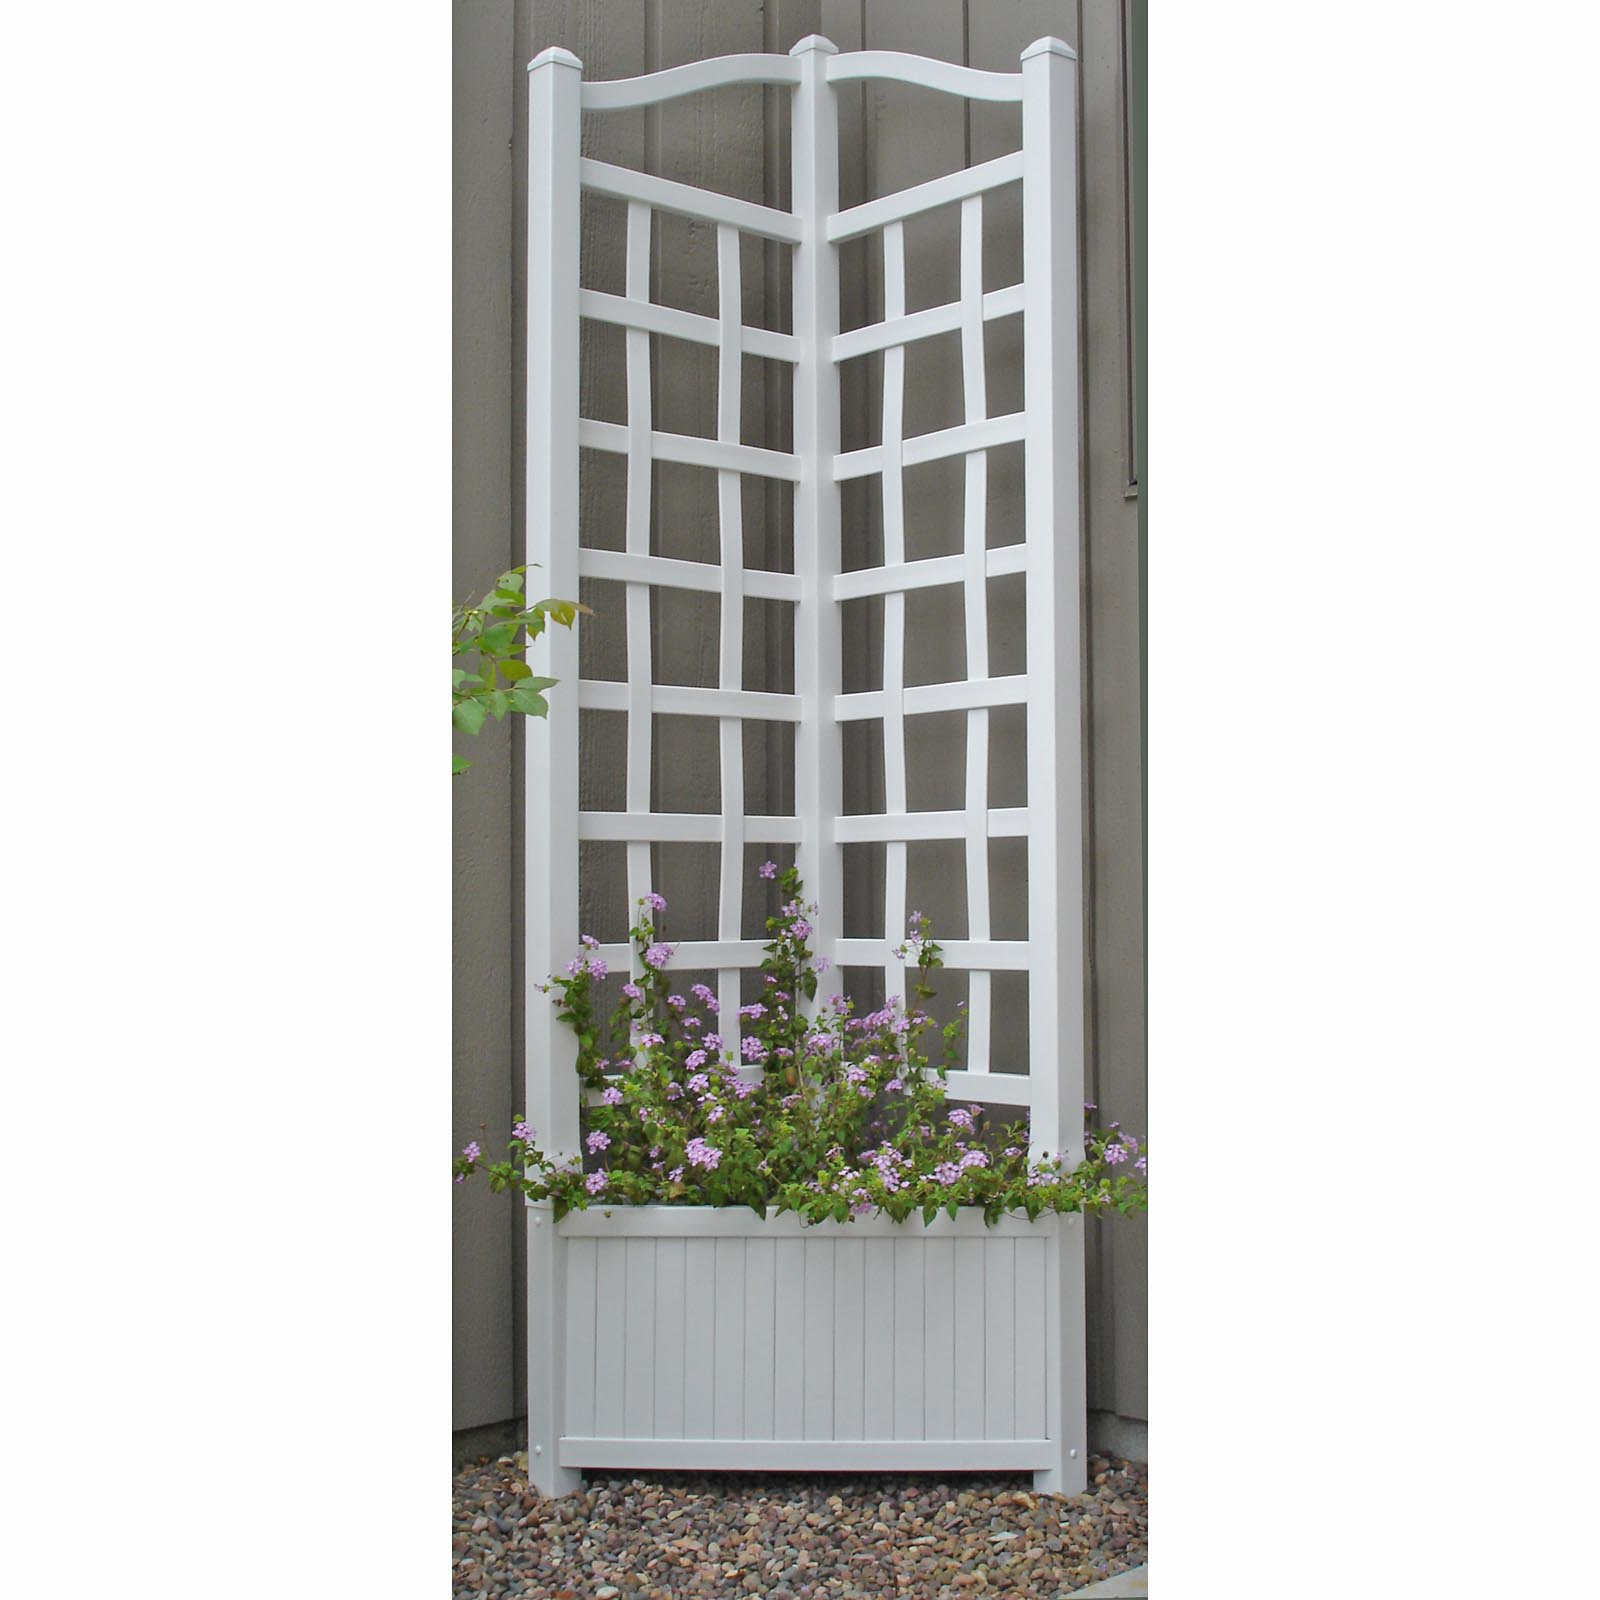 5.5-Foot Outdoor Triangle Vinyl Oxford Corner Planter with Trellis by Dura-Trel Inc